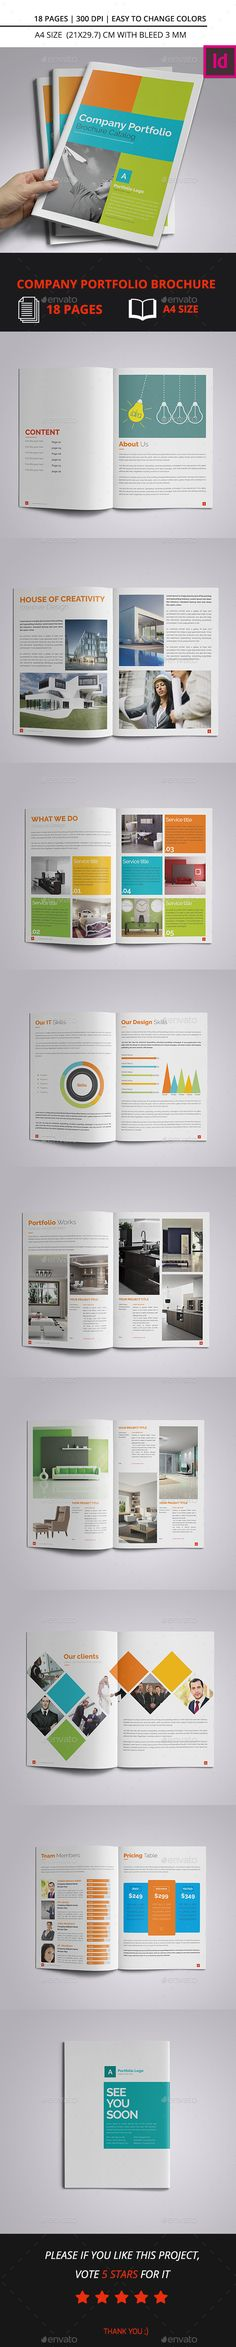 Buy Company Portfolio Brochure Catalog by GraphicGrape on GraphicRiver. Company Portfolio Brochure Catalog Easy to edit, you can change accent color throughout the whole document at onc. Business Fonts, Business Brochure, Business Design, Brochure Cover, Brochure Layout, Brochure Template, Book Cover Design, Book Design, Company Profile Design